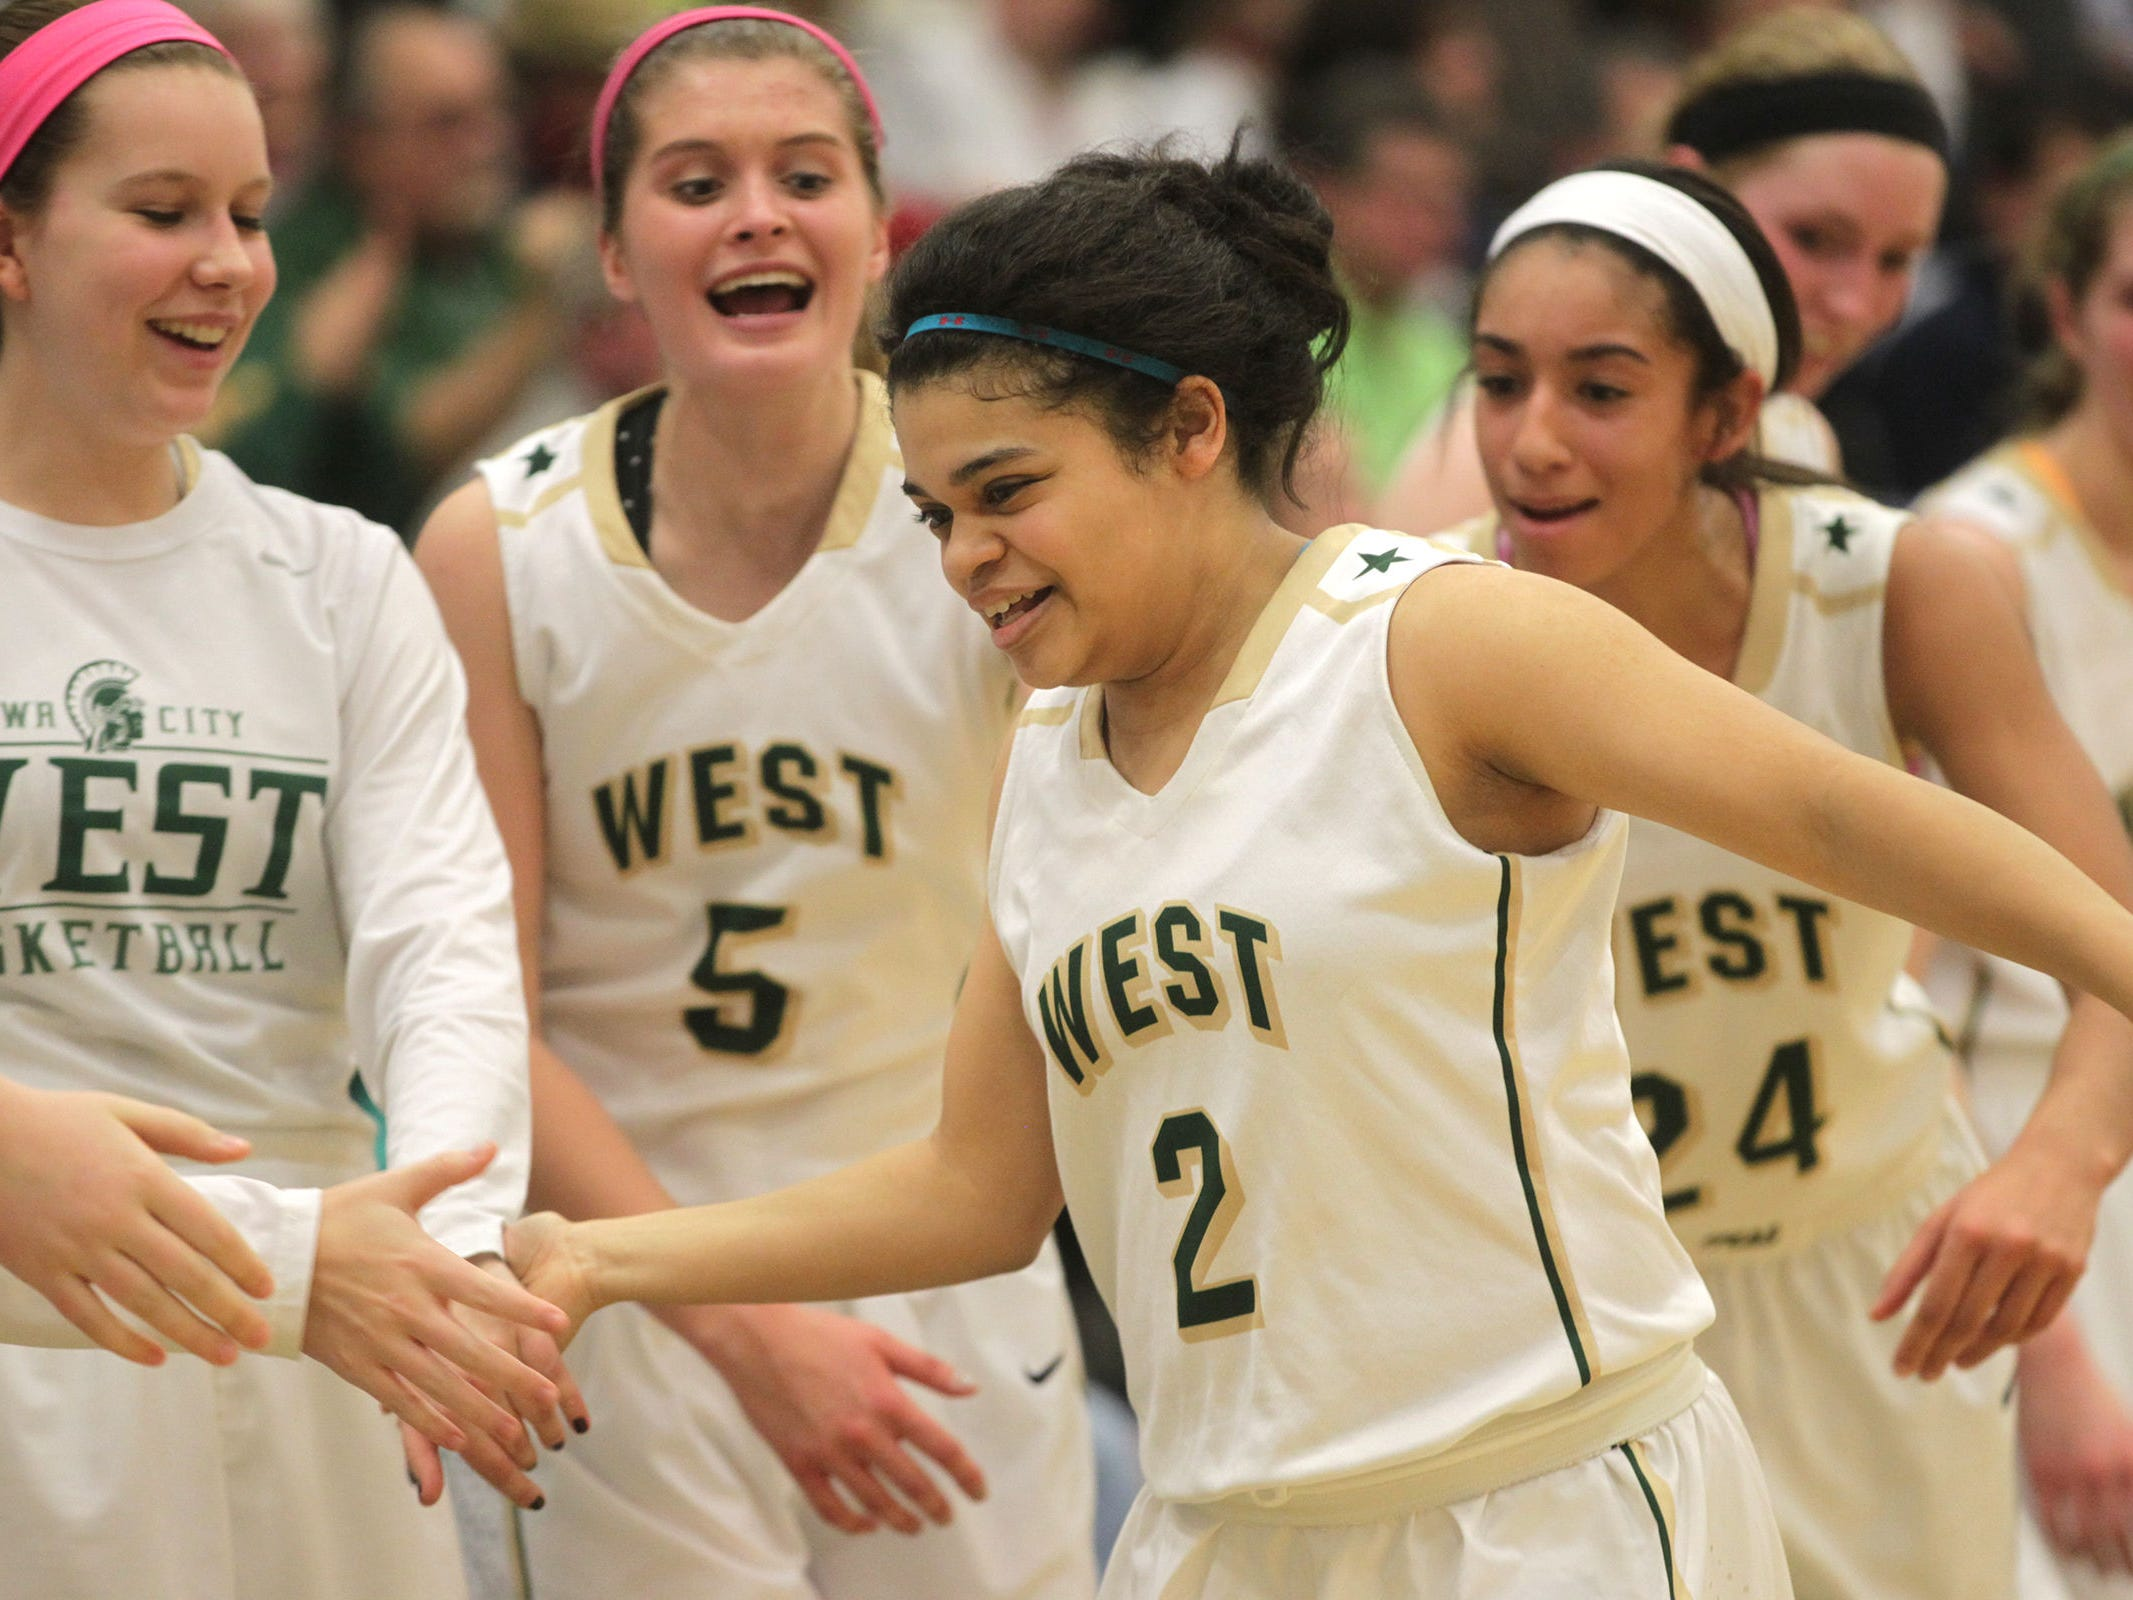 West High senior Bella Lozano-Dobbs gets high-fives as she heads to the bench in the final minute of the Women of Troy's Class 5A regional final against Pleasant Valley on Tuesday, Feb. 24, 2015. West High won, 45-27, to advance to the state tournament. David Scrivner / Iowa City Press-Citizen